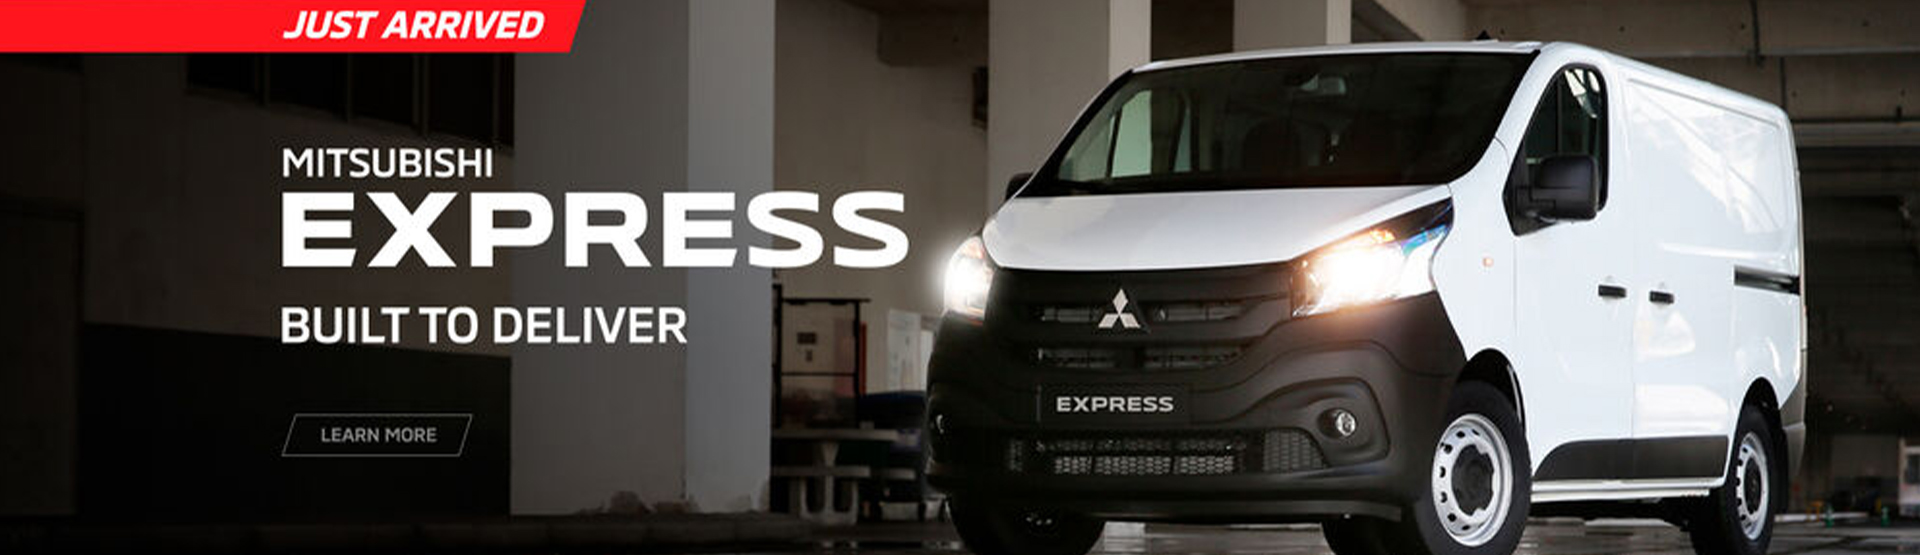 Mitsubishi Express: Built to Deliver